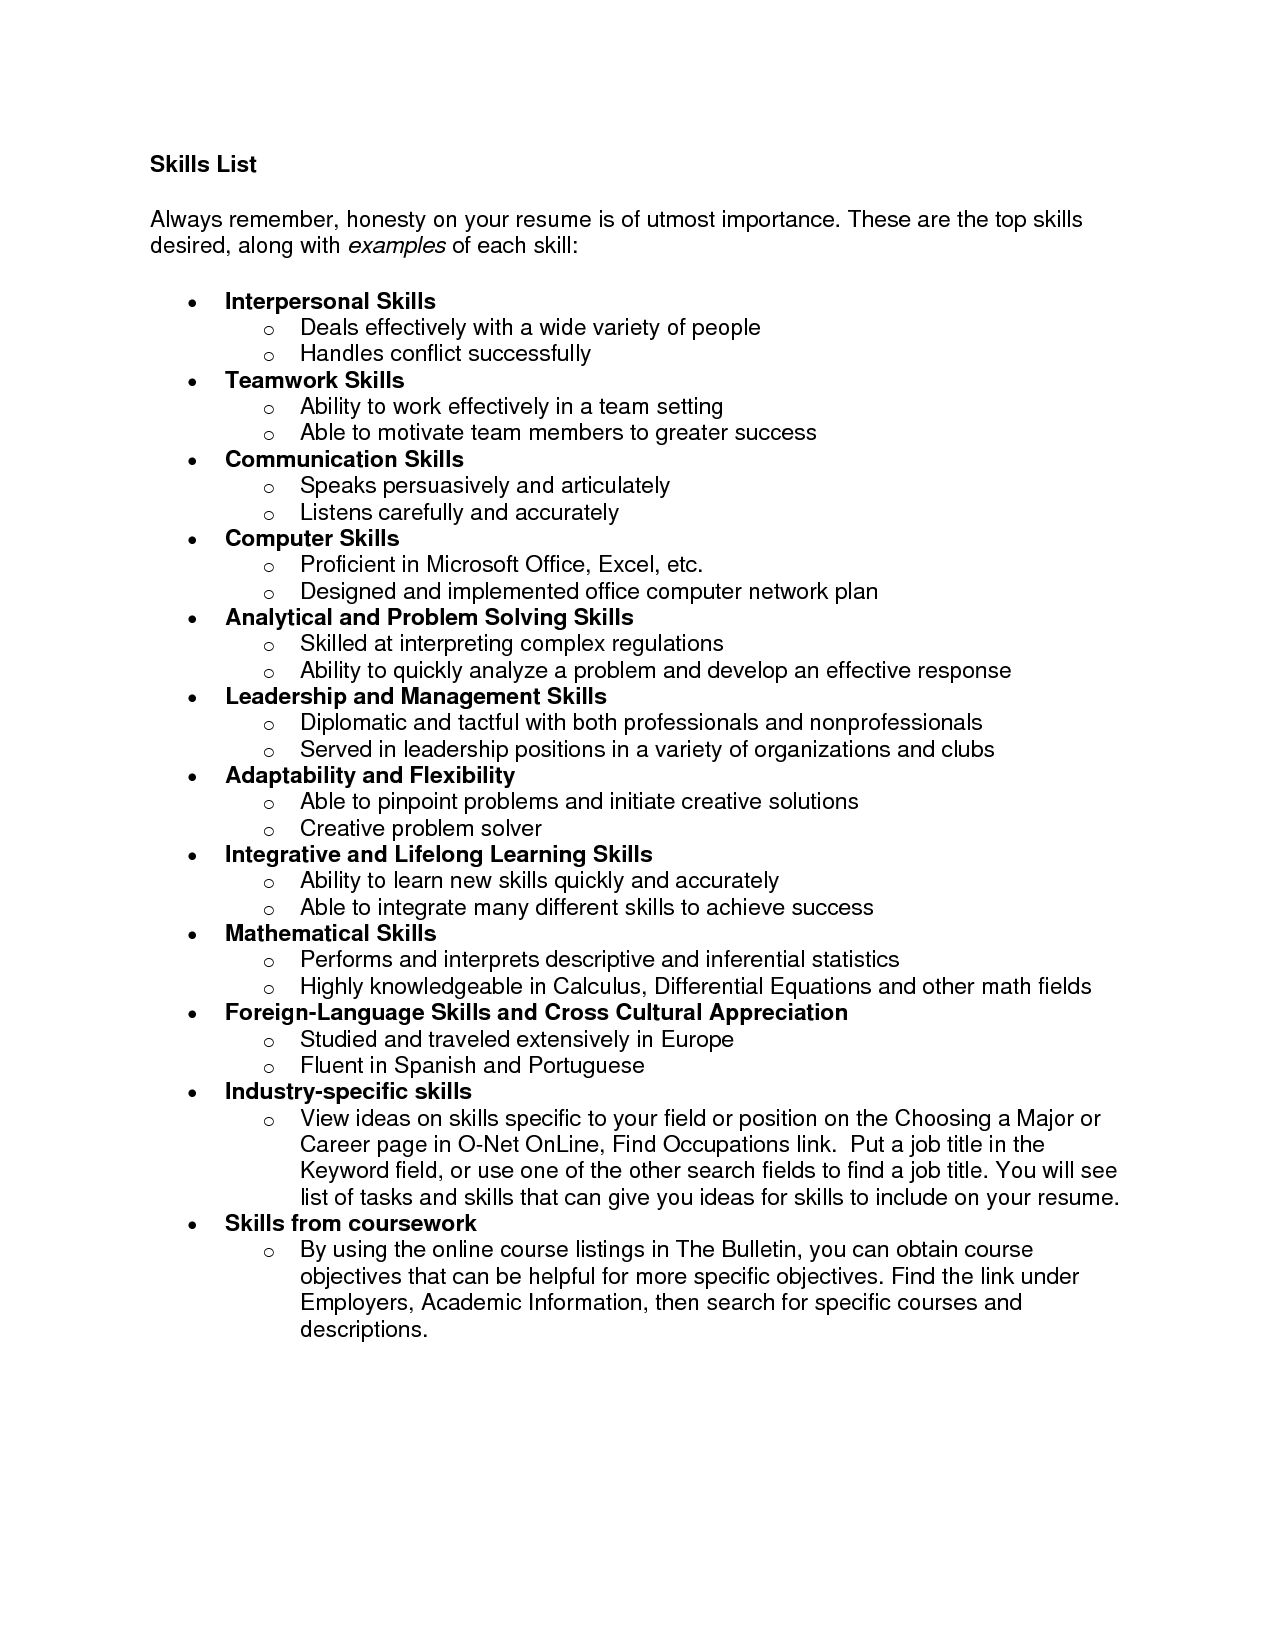 Skills Resume Template List Skills Resume Photo For Example Career Termplate Free